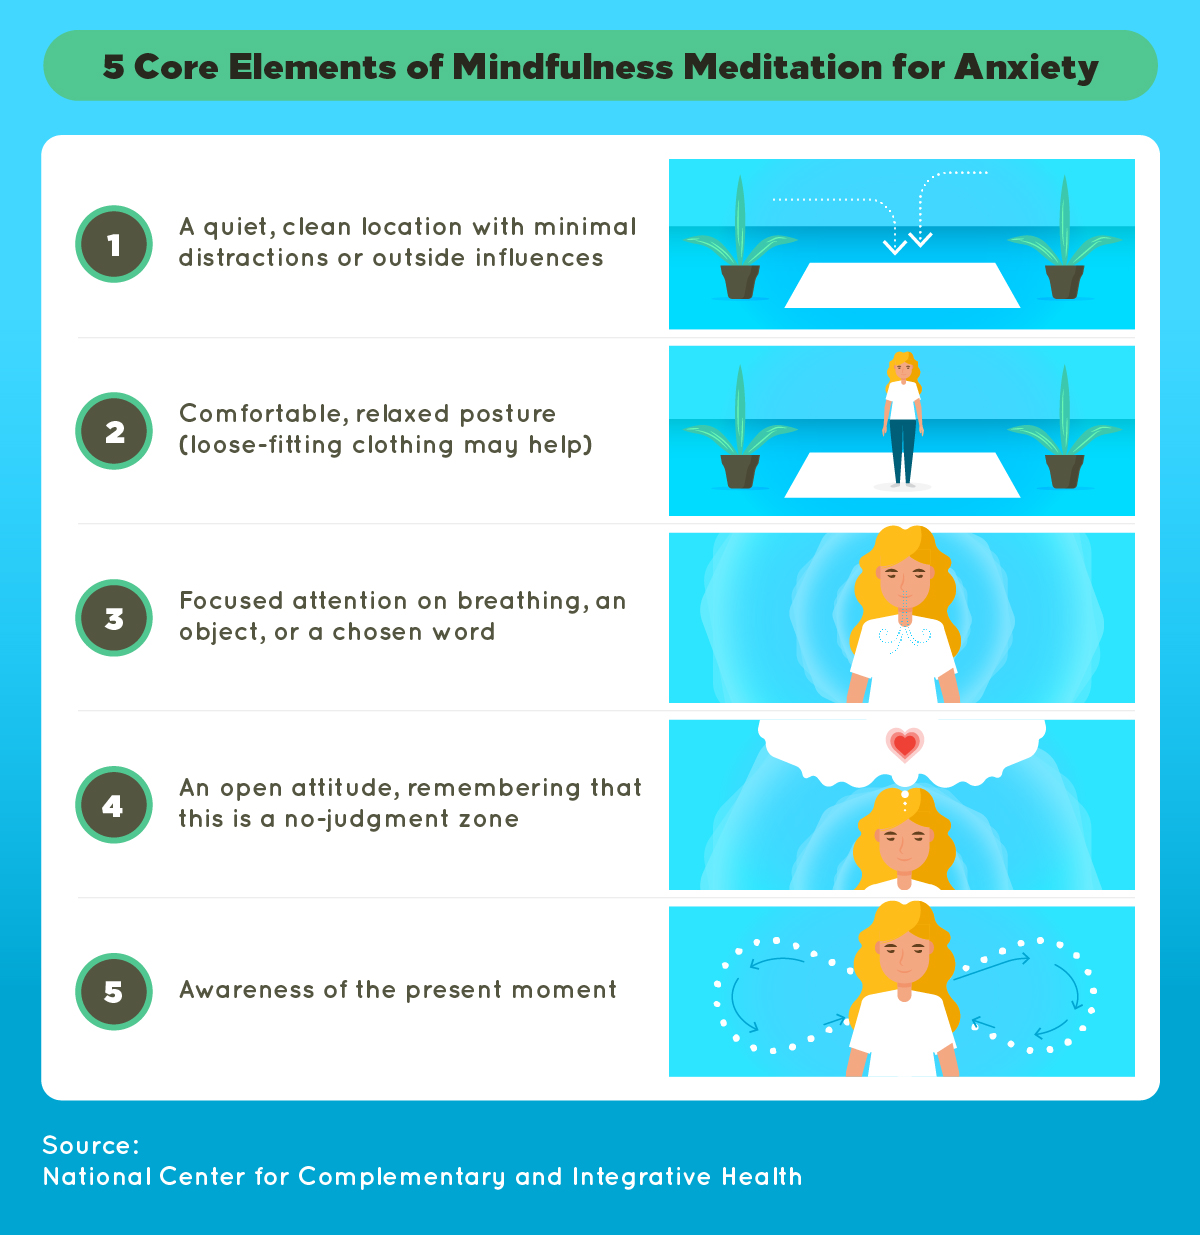 A quiet location, comfortable posture, focused attention, an open attitude, and awareness of the present moment are core elements of meditation for anxiety.